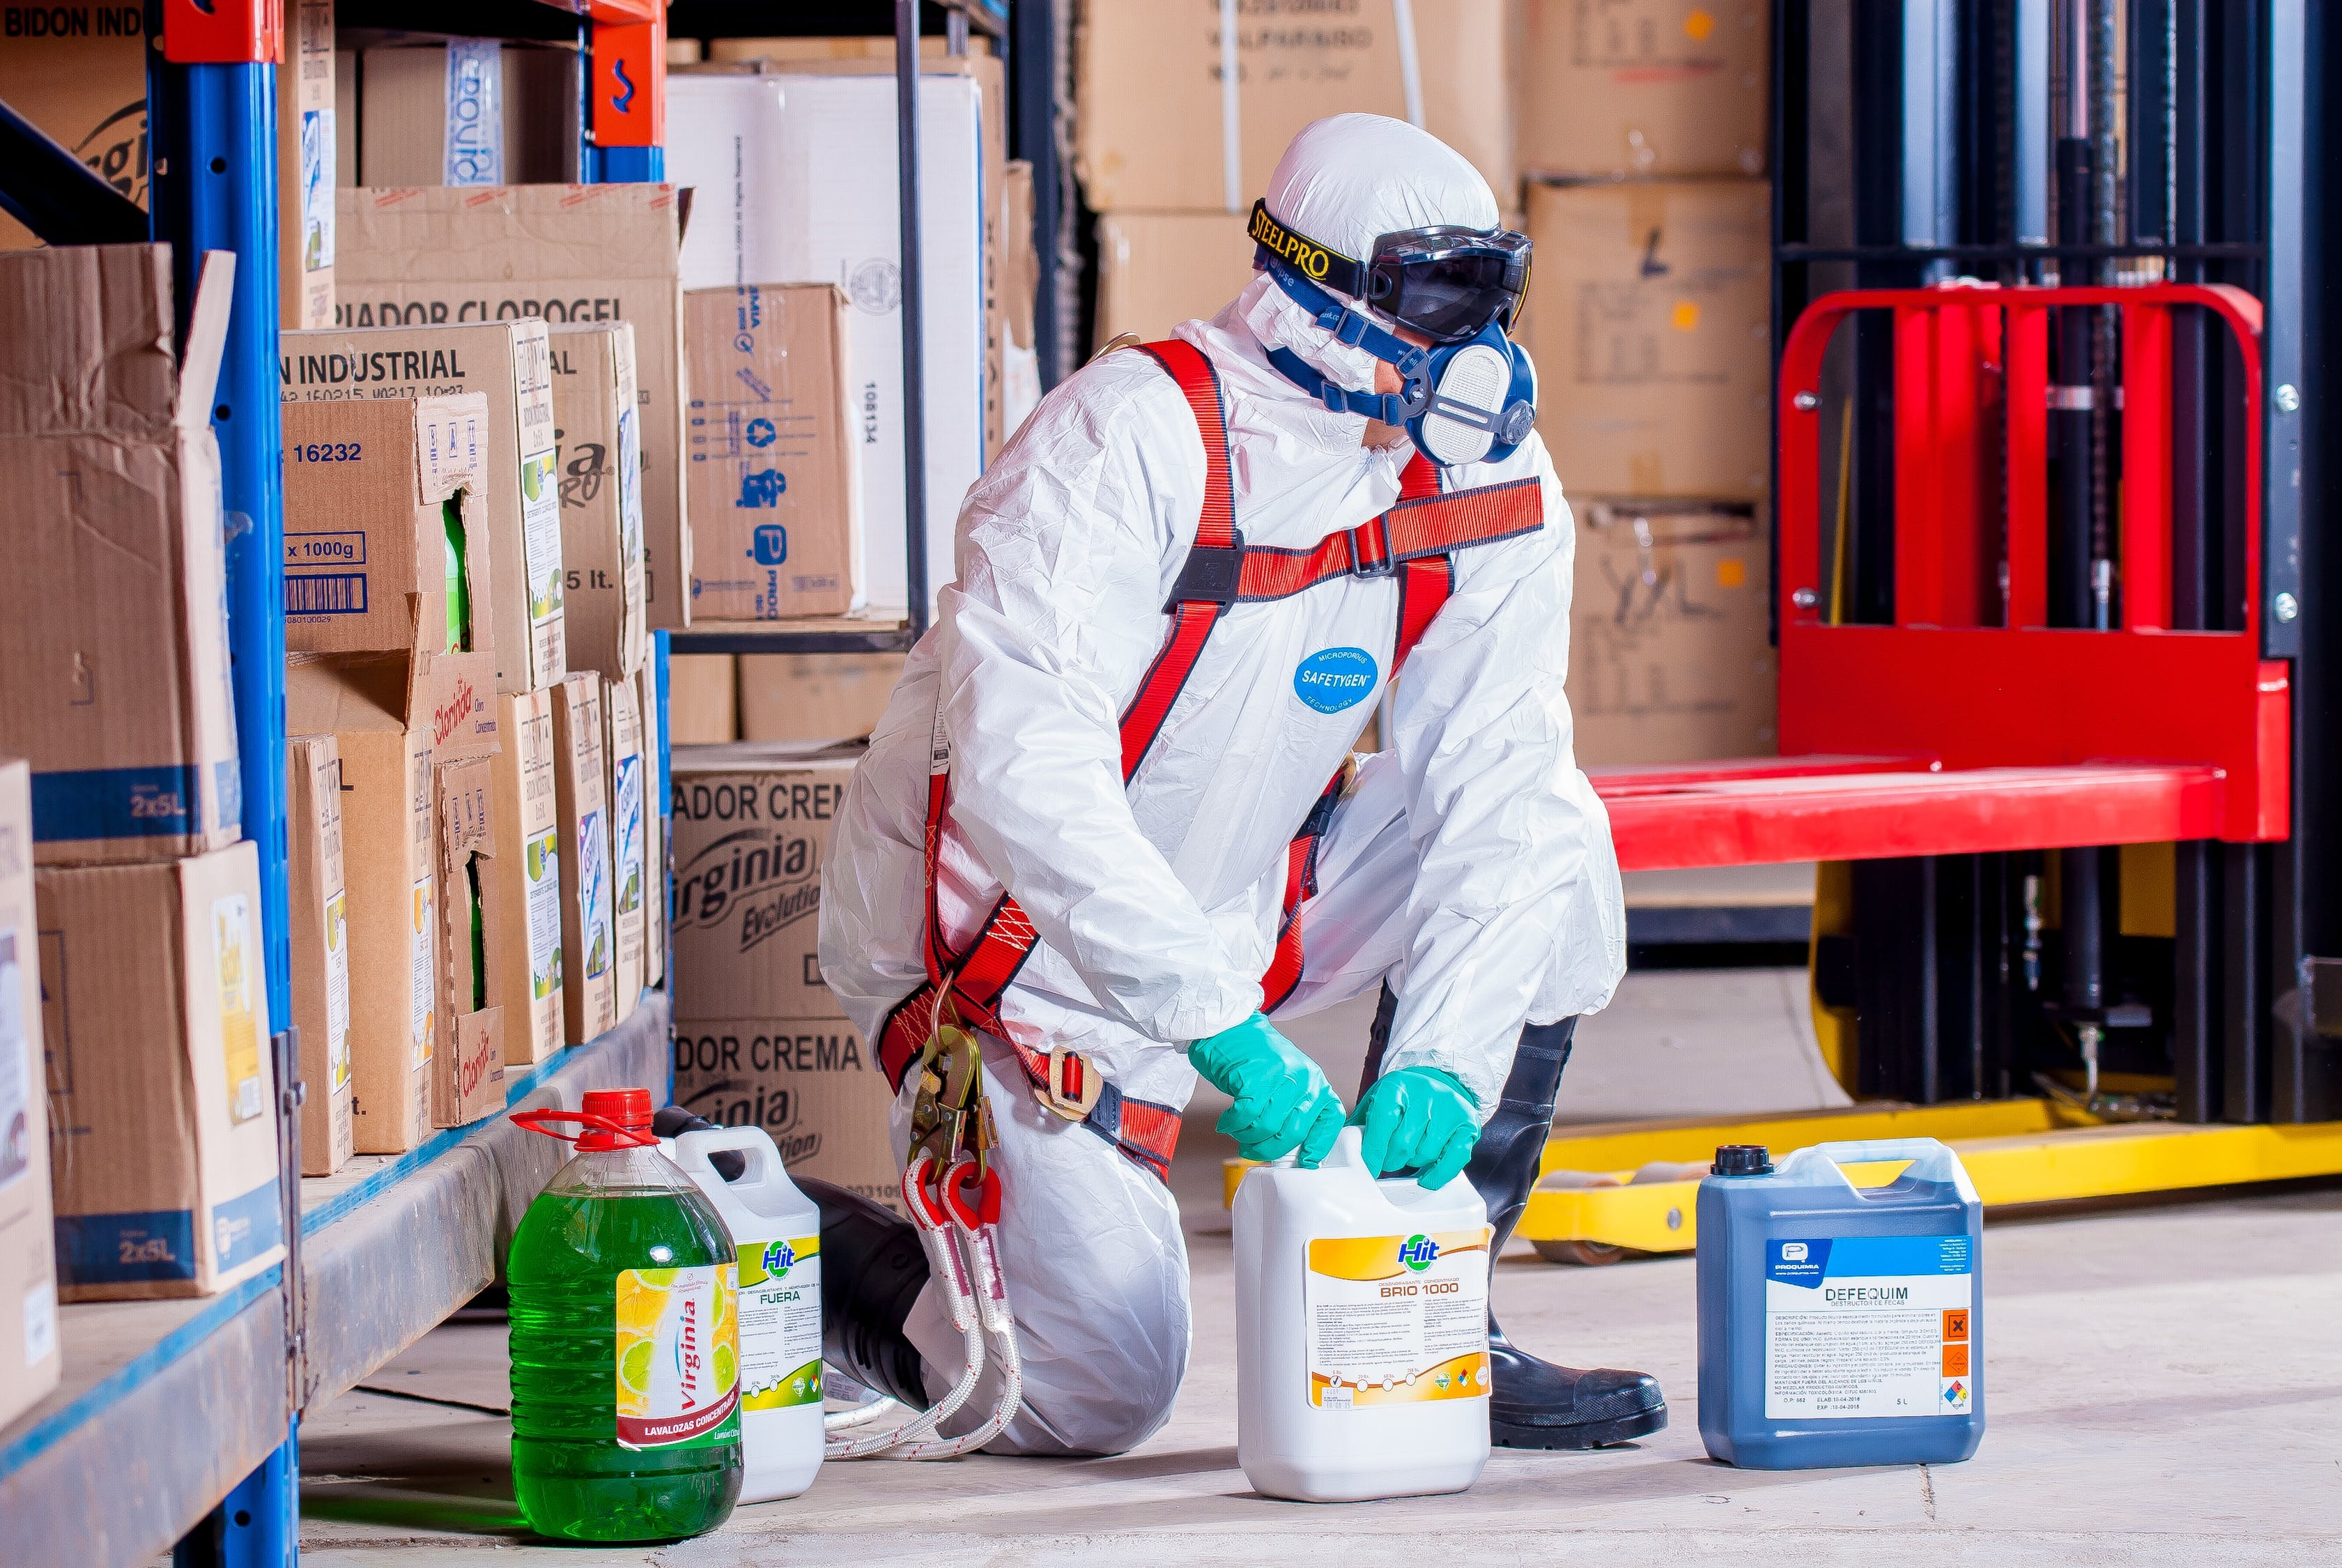 Person kneeling on the ground in a hazmat suit and PPE opening a chemical bottle